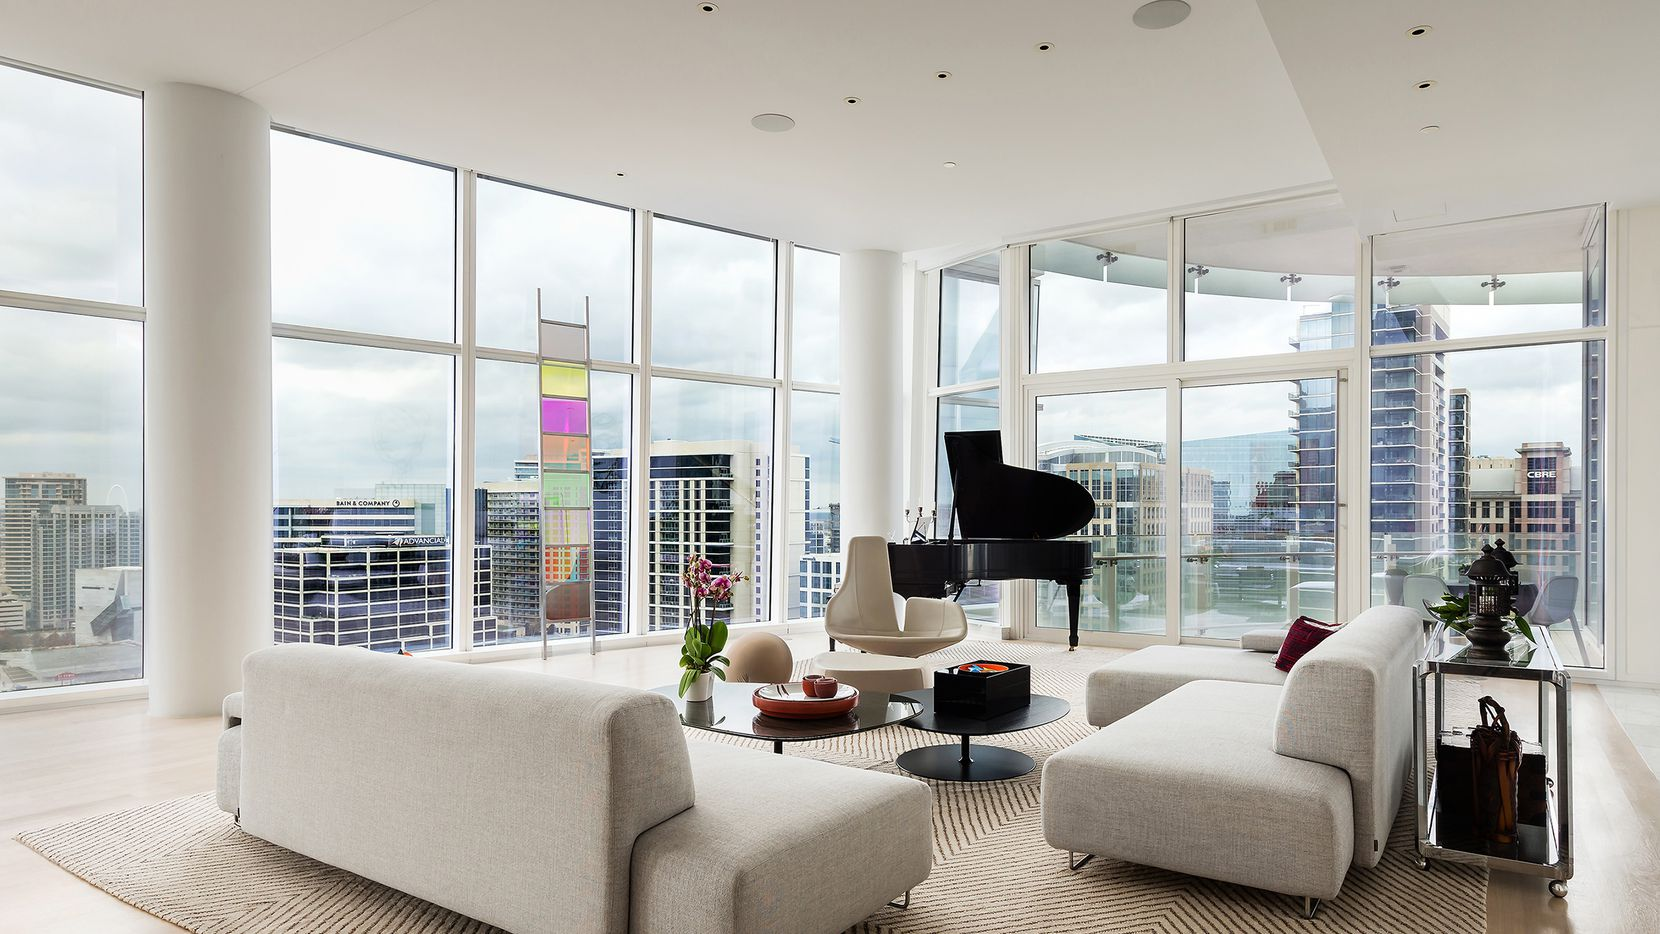 The half-floor residence at 1918 Olive St., unit 1901 in Museum Tower offers unobstructed views of the Dallas Arts District and Klyde Warren Park.